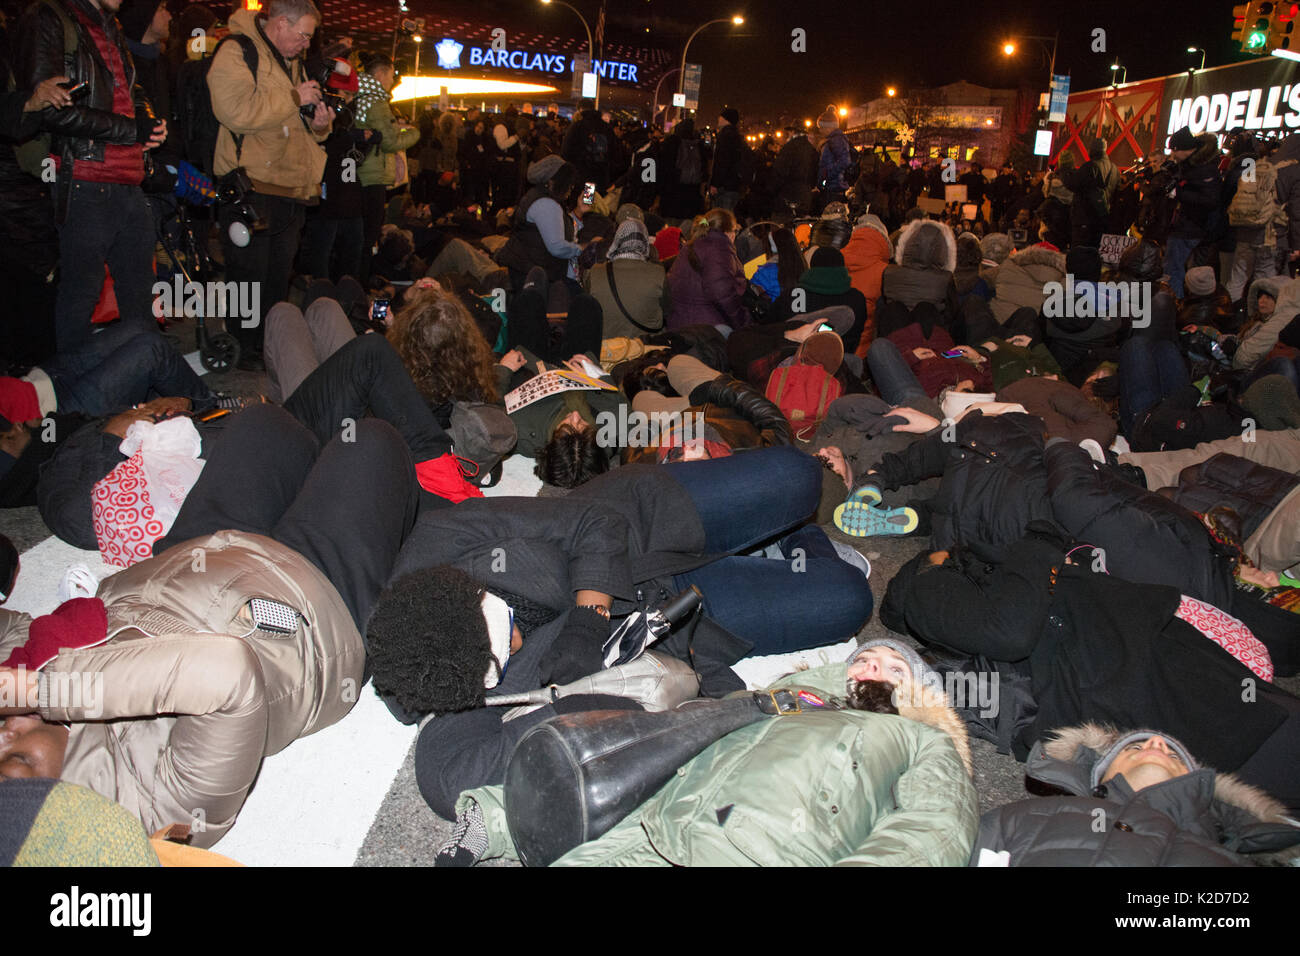 Black Lives Matter activists enact a die-in at Barclays Center protesting grand jury's non-indictment in Eric Garner Stock Photo